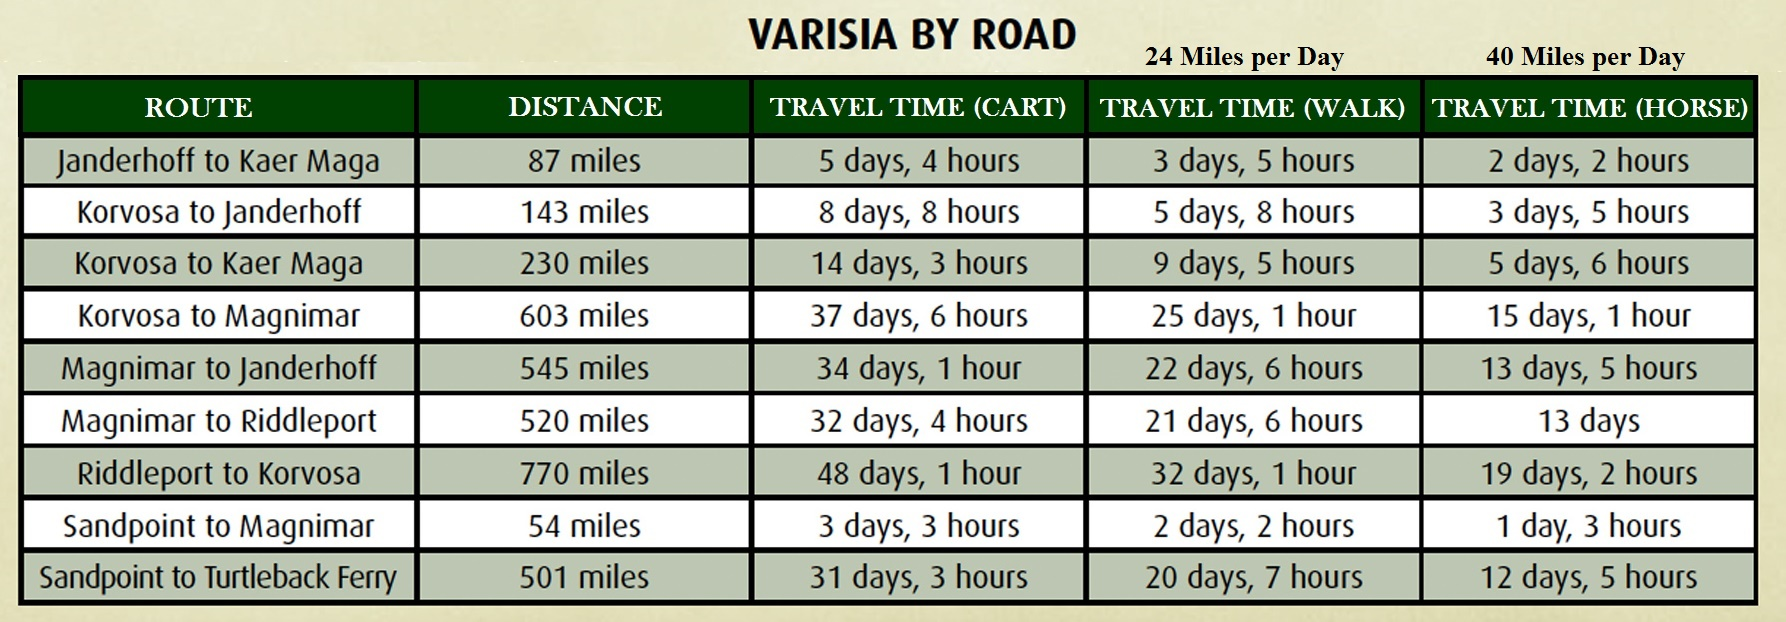 _Varisia_travel_times.jpg